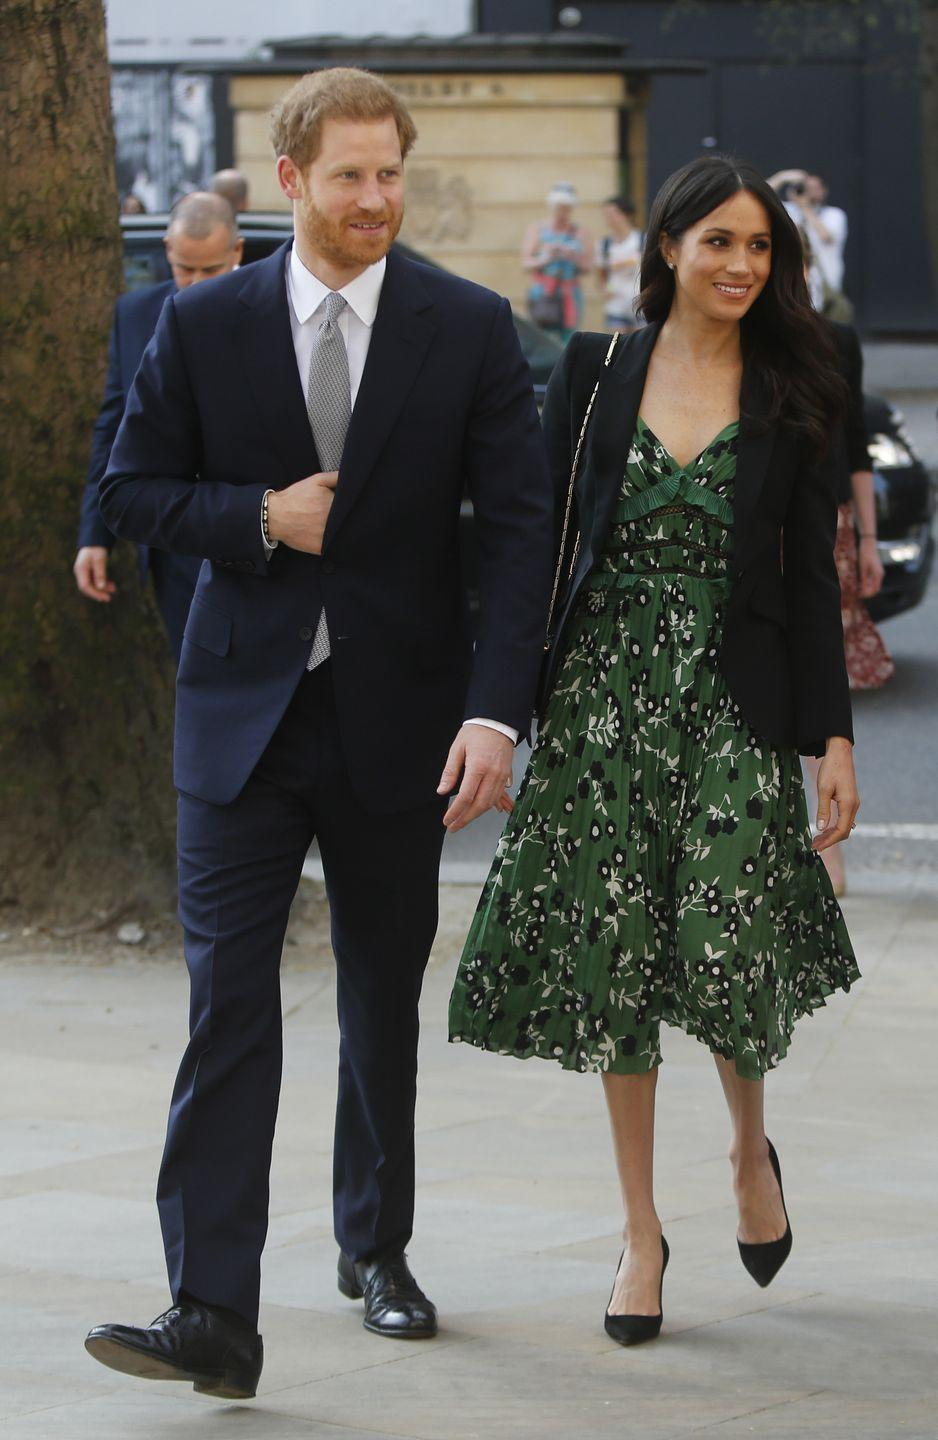 "<p>Meghan opted for a <a href=""https://www.harrods.com/en-gb/self-portrait/cold-shoulder-floral-dress-p000000000005821467"" rel=""nofollow noopener"" target=""_blank"" data-ylk=""slk:vibrant green dress from Self Portrait"" class=""link rapid-noclick-resp"">vibrant green dress from Self Portrait</a> paired with a dark blazer and black pointy-toe pumps for an <a href=""https://www.townandcountrymag.com/society/tradition/a12044088/what-are-the-invictus-games-competition/"" rel=""nofollow noopener"" target=""_blank"" data-ylk=""slk:Invictus Games event in London"" class=""link rapid-noclick-resp"">Invictus Games event in London</a>.</p><p><a class=""link rapid-noclick-resp"" href=""https://www.neimanmarcus.com/Self-Portrait-Cold-Shoulder-Floral-Print-Midi-Dress-with-Pleats-Frills/prod206200208/p.prod"" rel=""nofollow noopener"" target=""_blank"" data-ylk=""slk:SHOP NOW"">SHOP NOW</a> <em>Self-Portrait Cold-Shoulder Floral-Print Midi Dress, $510</em><br></p>"